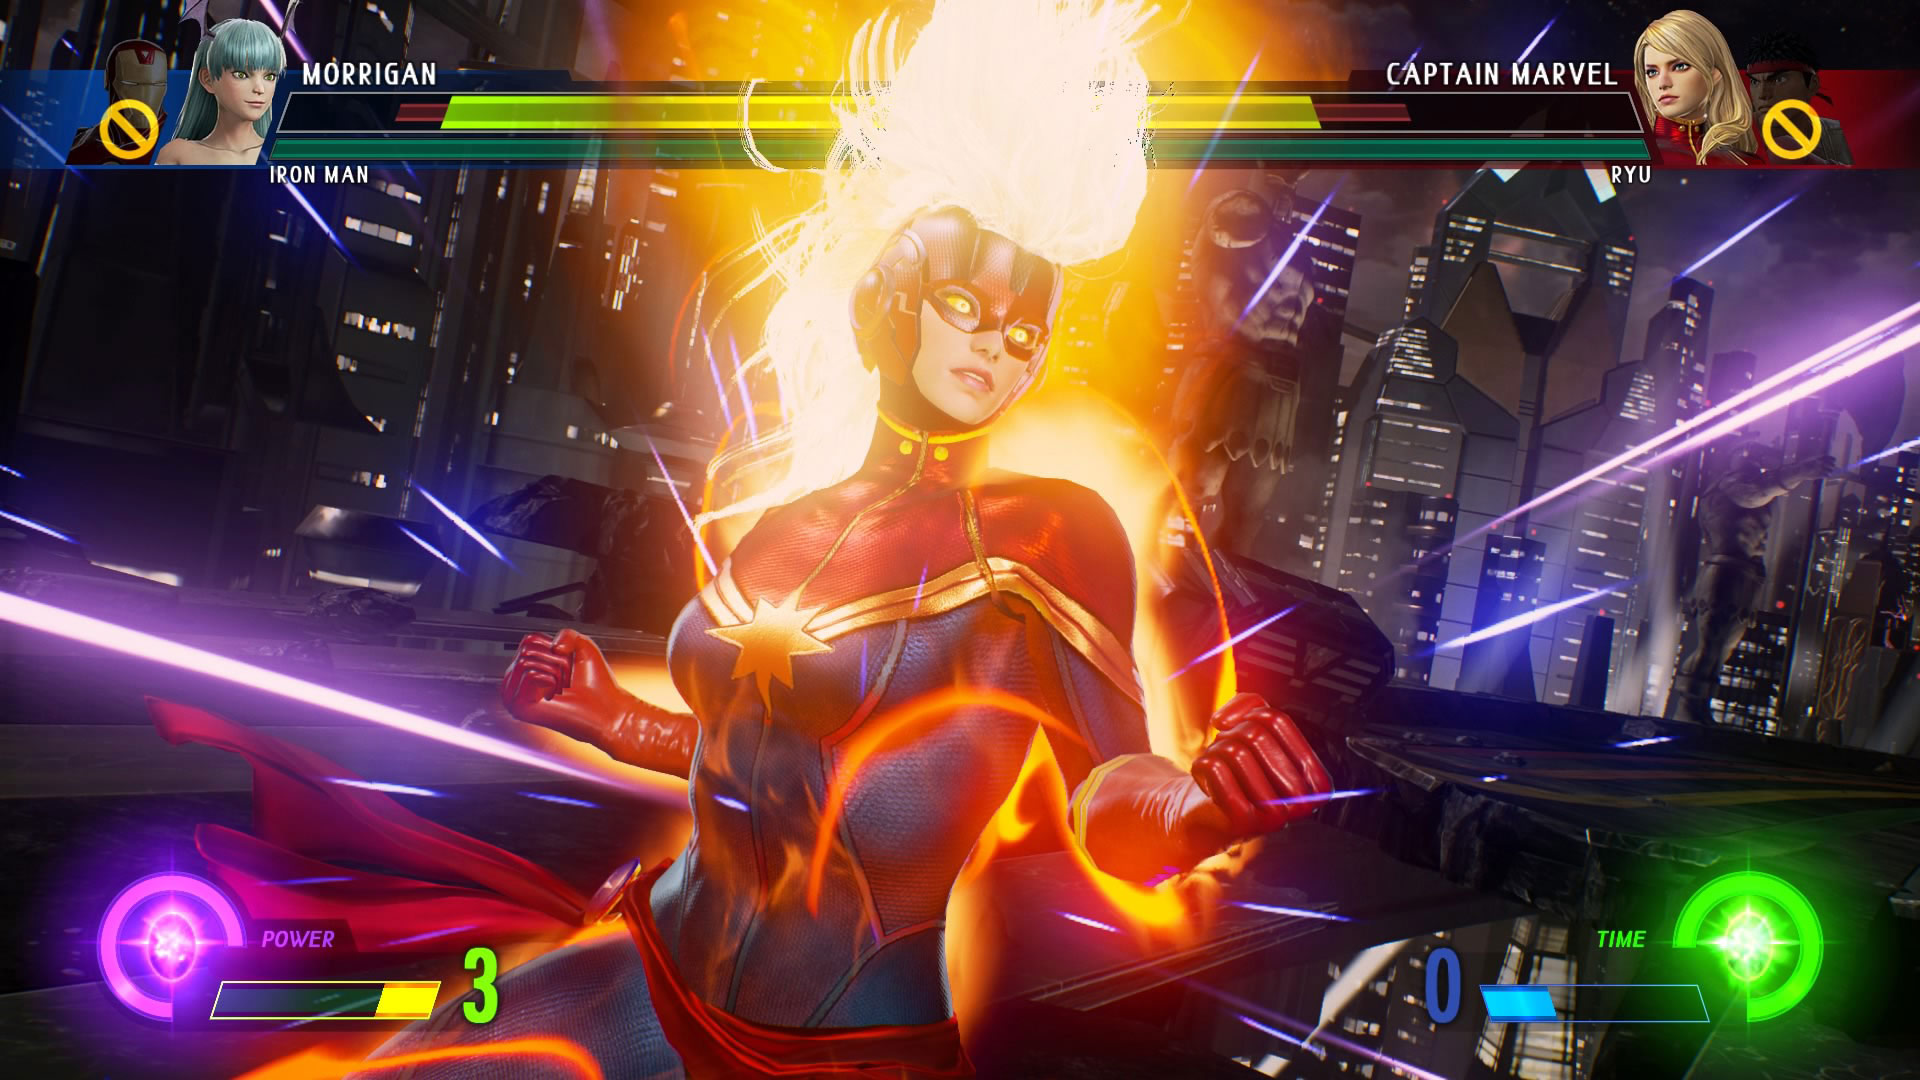 Marvel vs. Capcom: Infinite gameplay screenshots 3 out of 6 image gallery